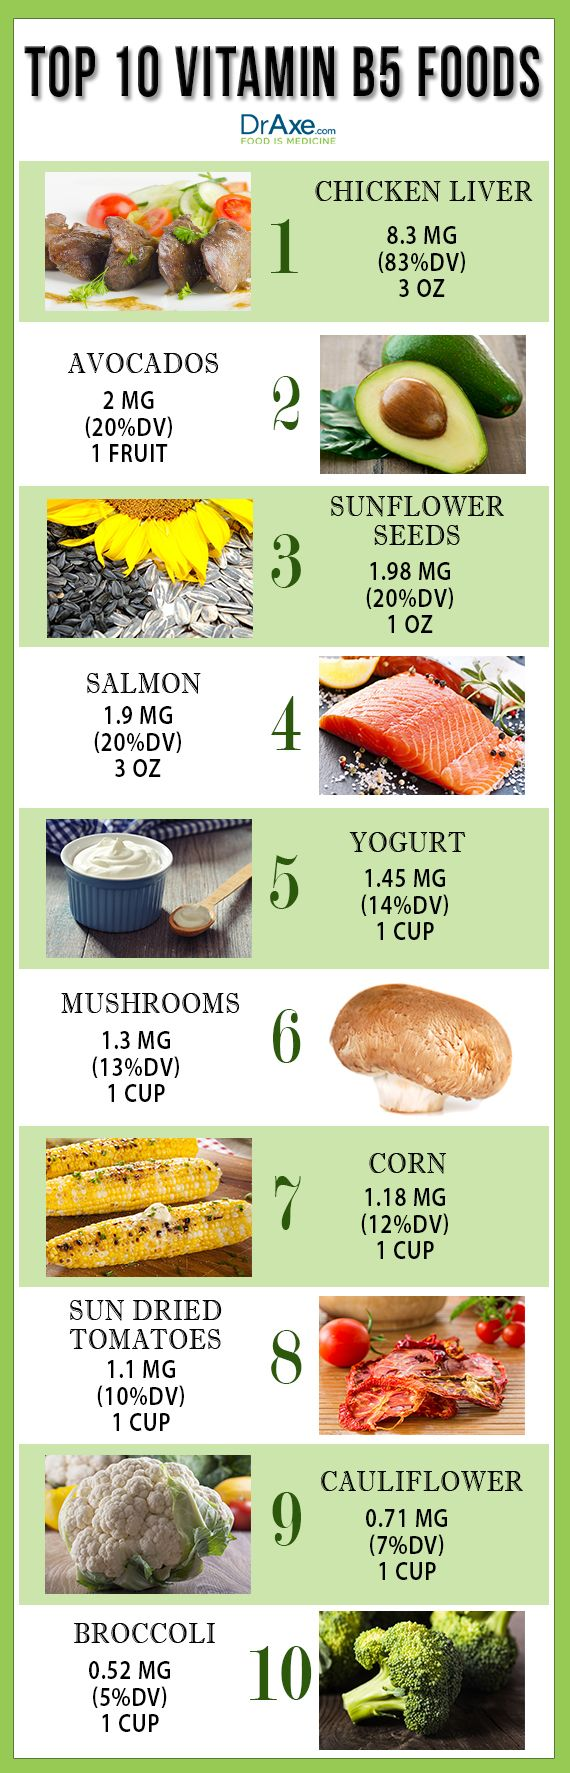 Consume 2-3 servings a day of these vitamin B5 rich foods daily.